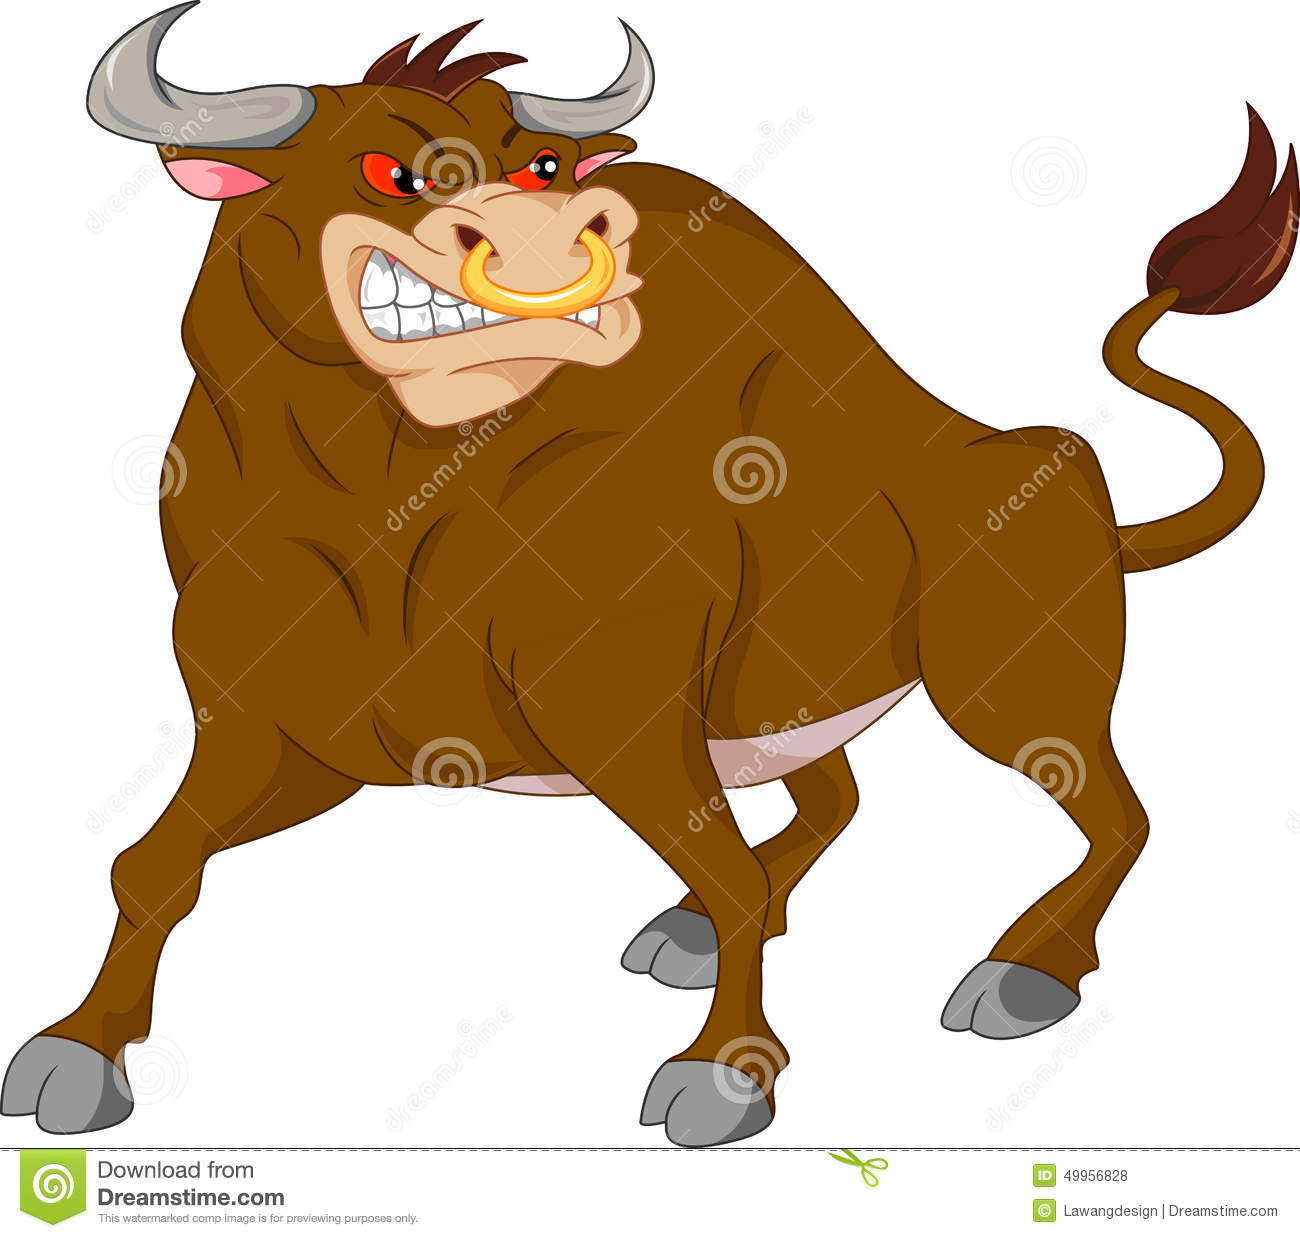 Angry Bull Cartoon Stock Vector - Image: 49956828